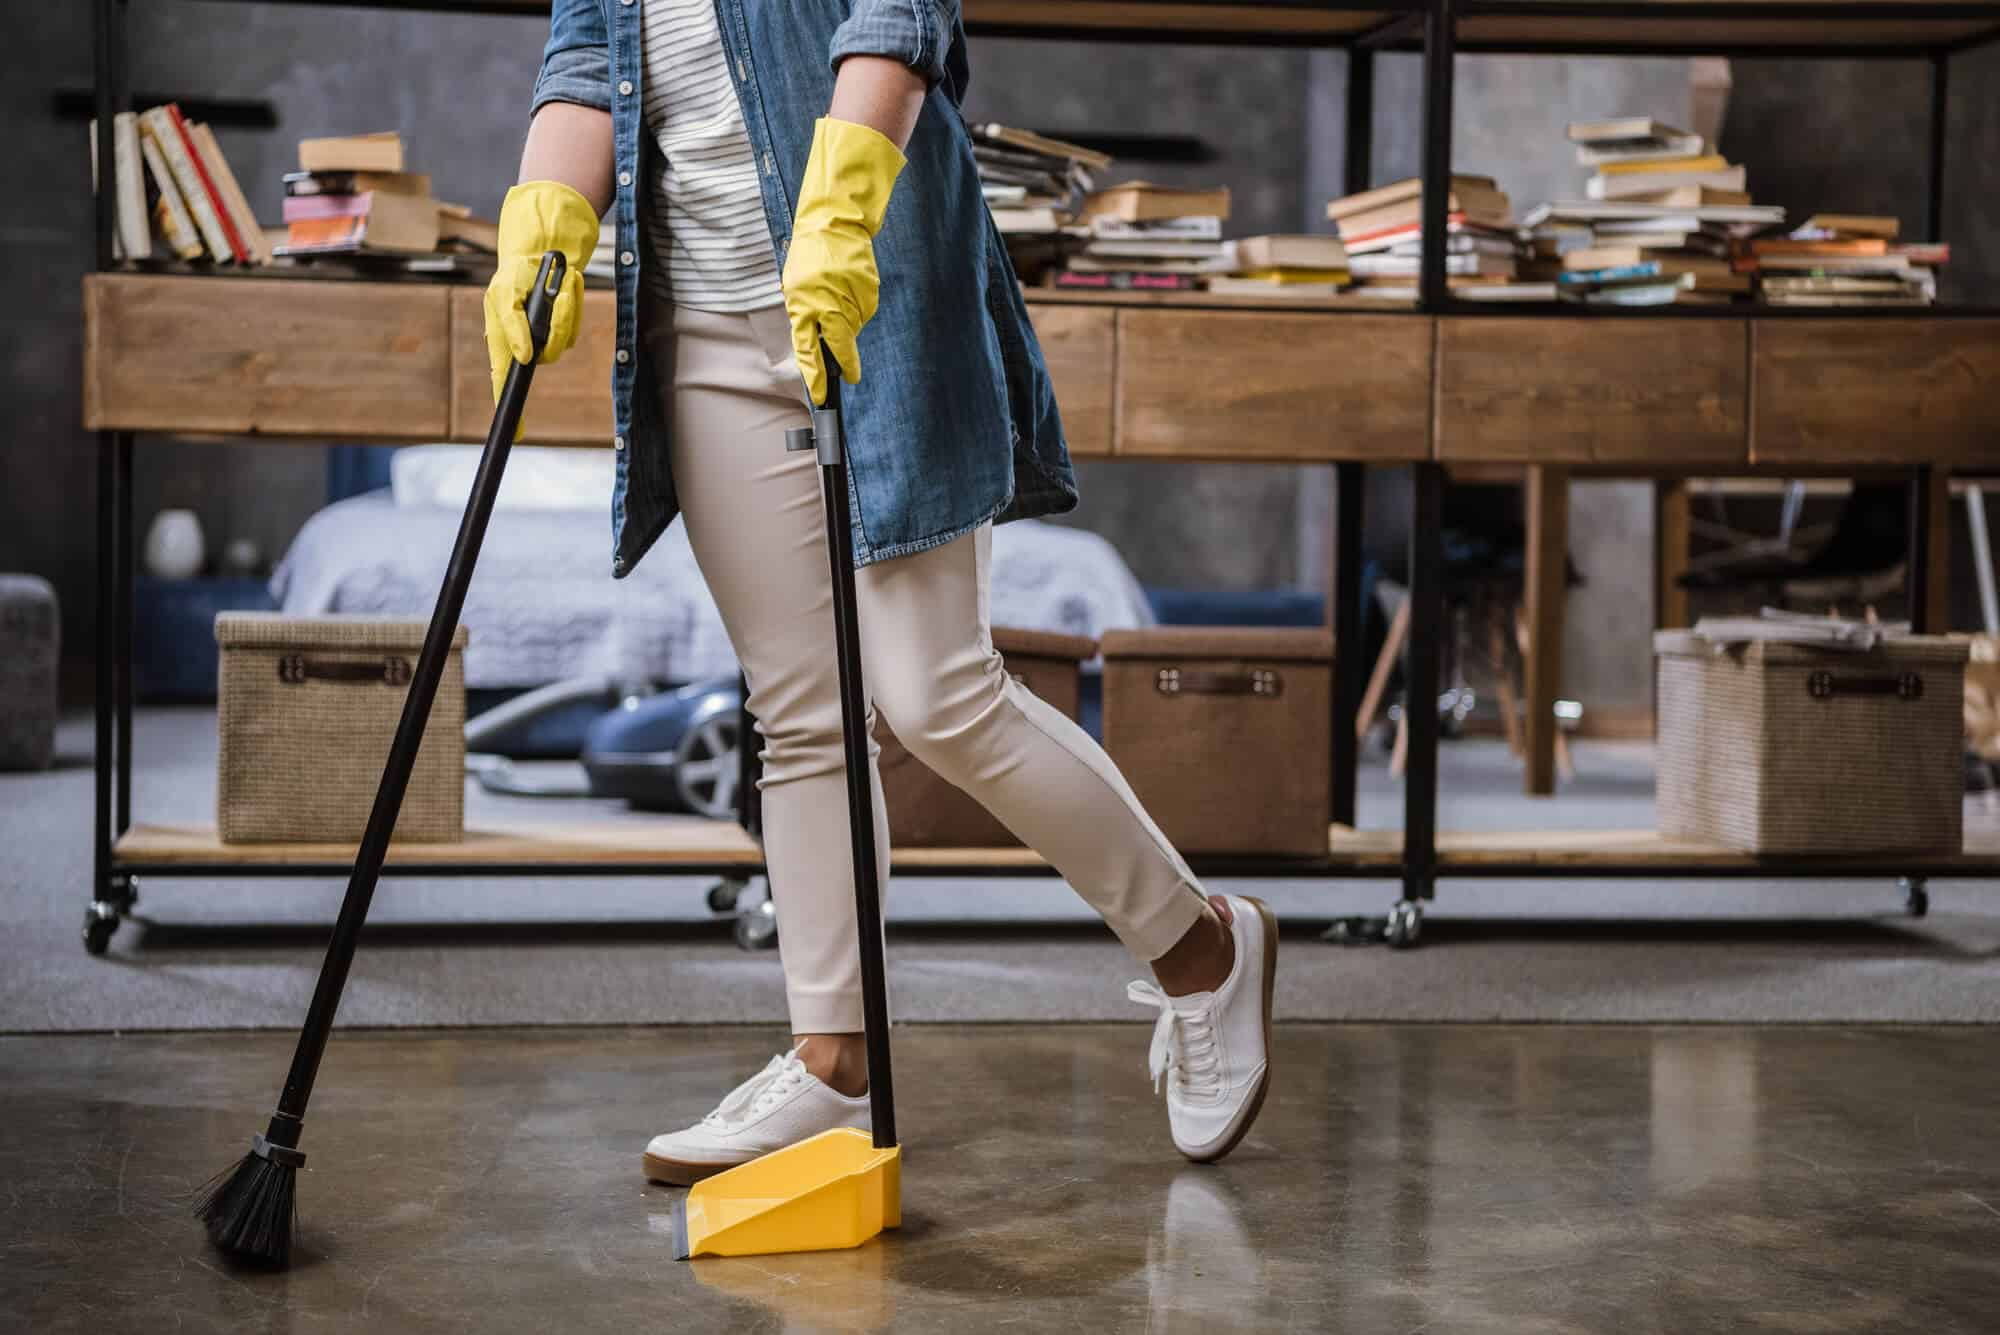 House cleaning hacks you need to know